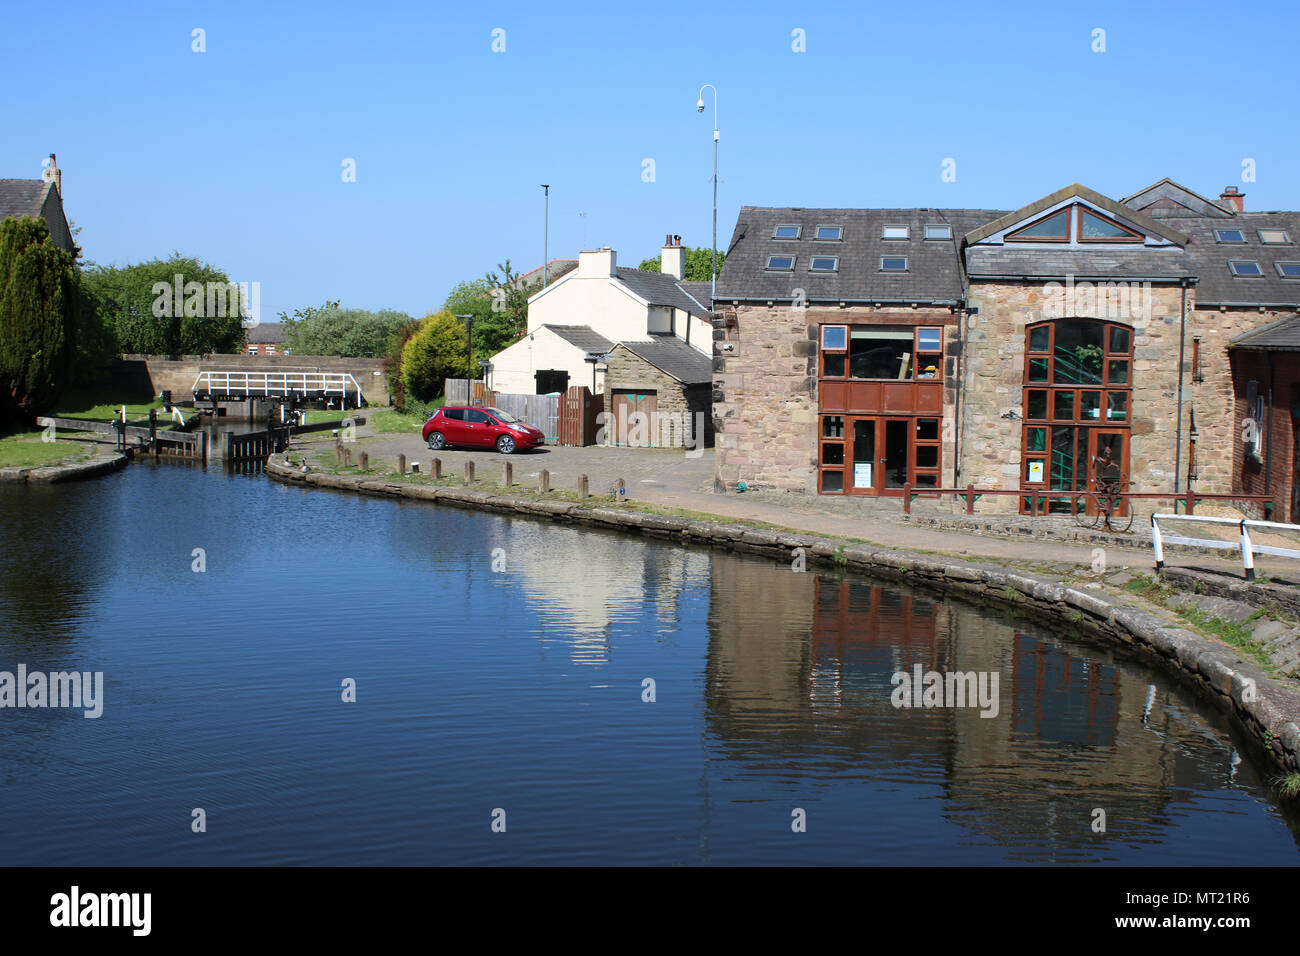 Nova Scotia Wharf in Blackburn, Lancashire on the Leeds and Liverpool canal with the Bob Watts building to the right of the canal towpath. - Stock Image